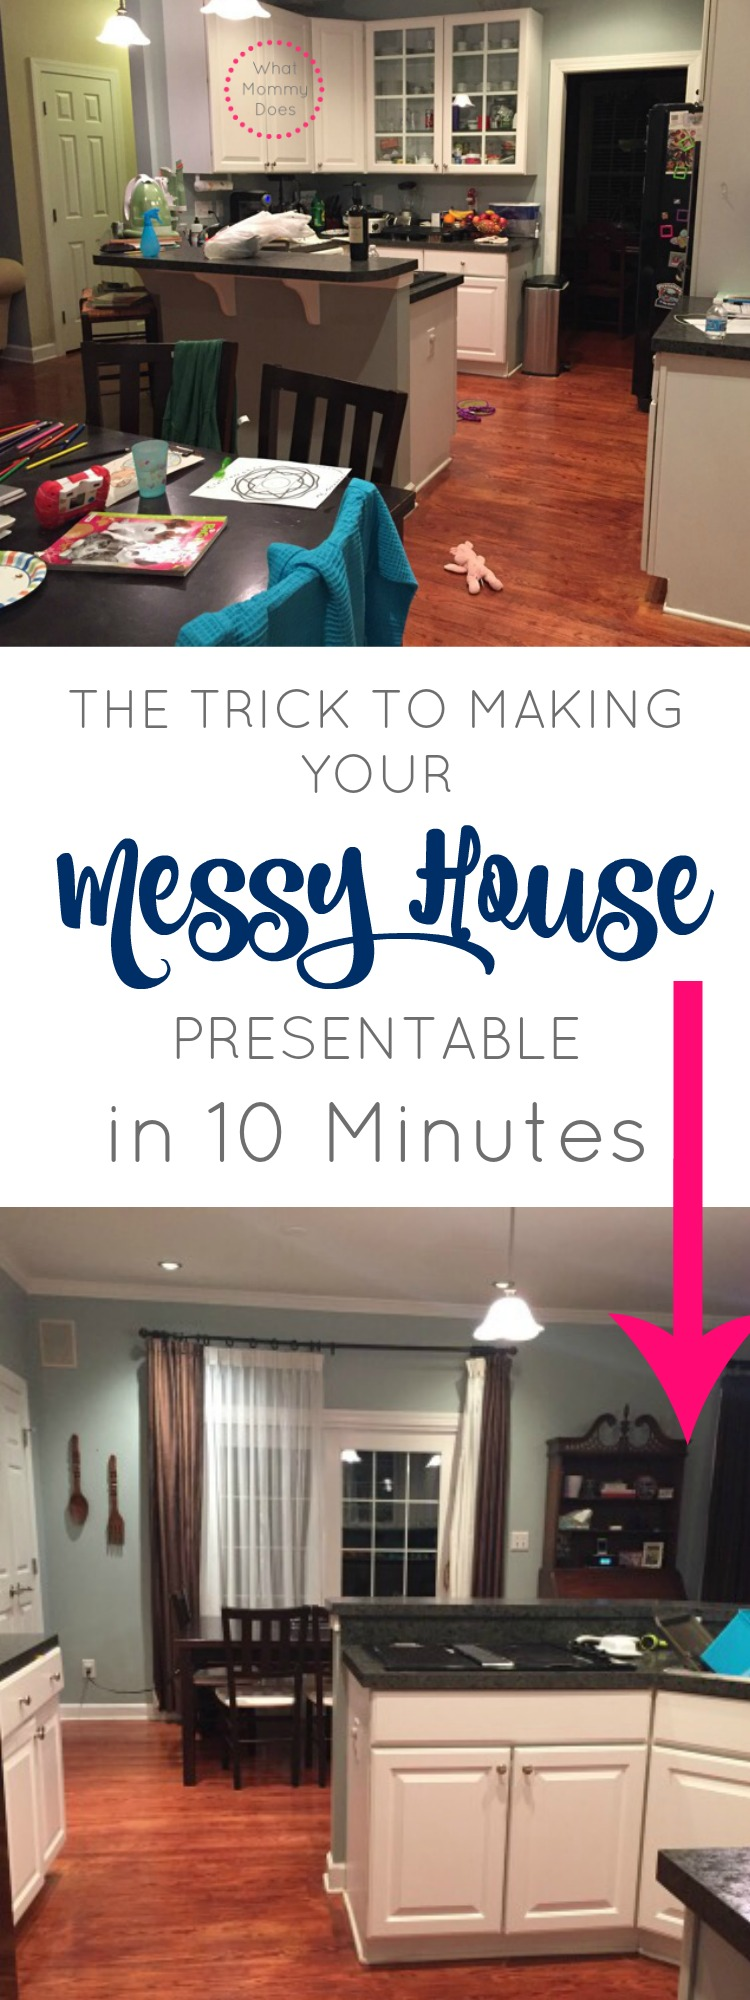 cleaning tricks messy house